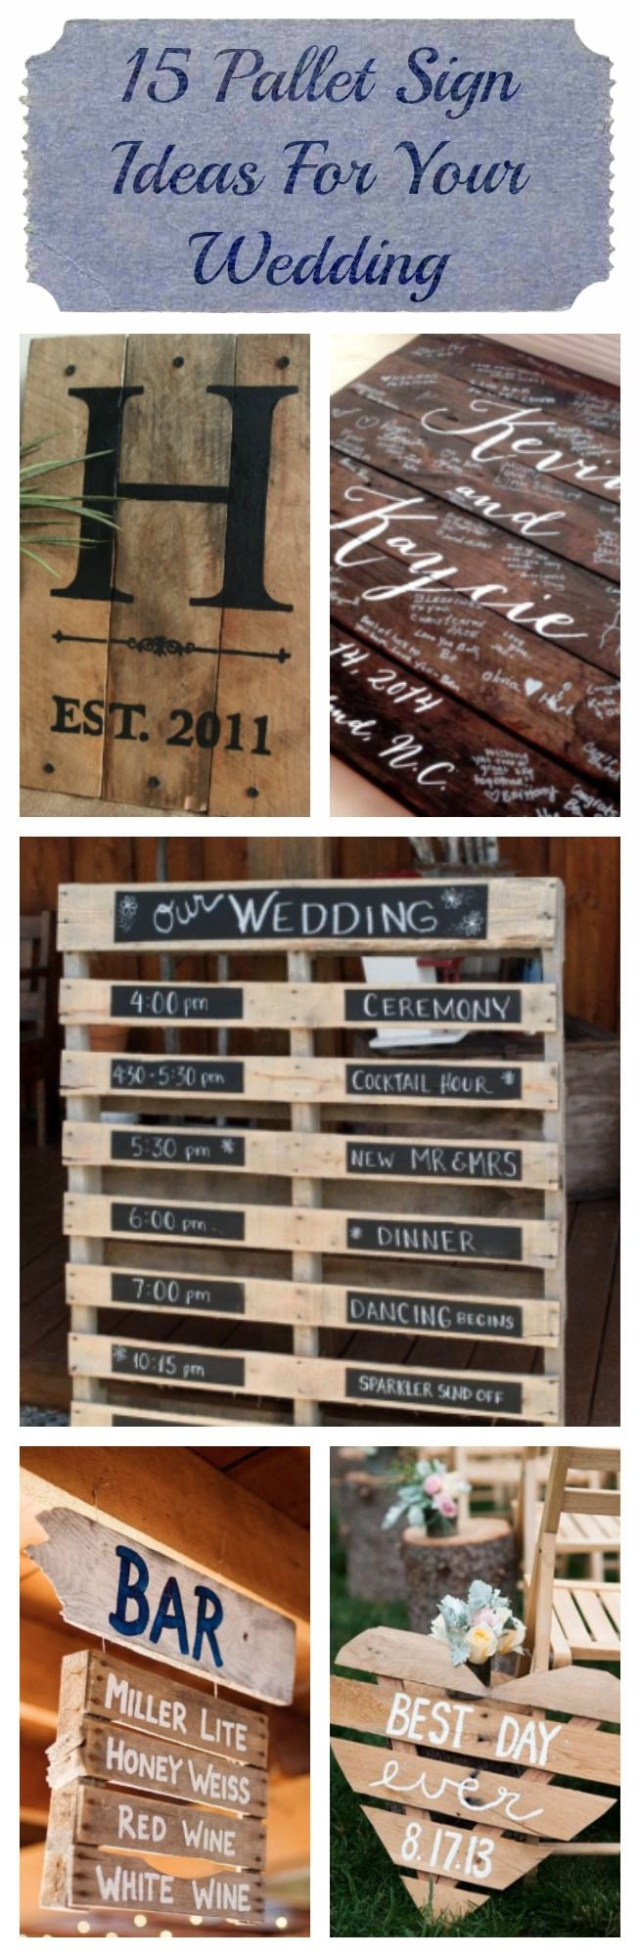 Pallets Wedding Ideas 15 Pallet Sign Ideas For Your Wedding Rustic Wedding Chic